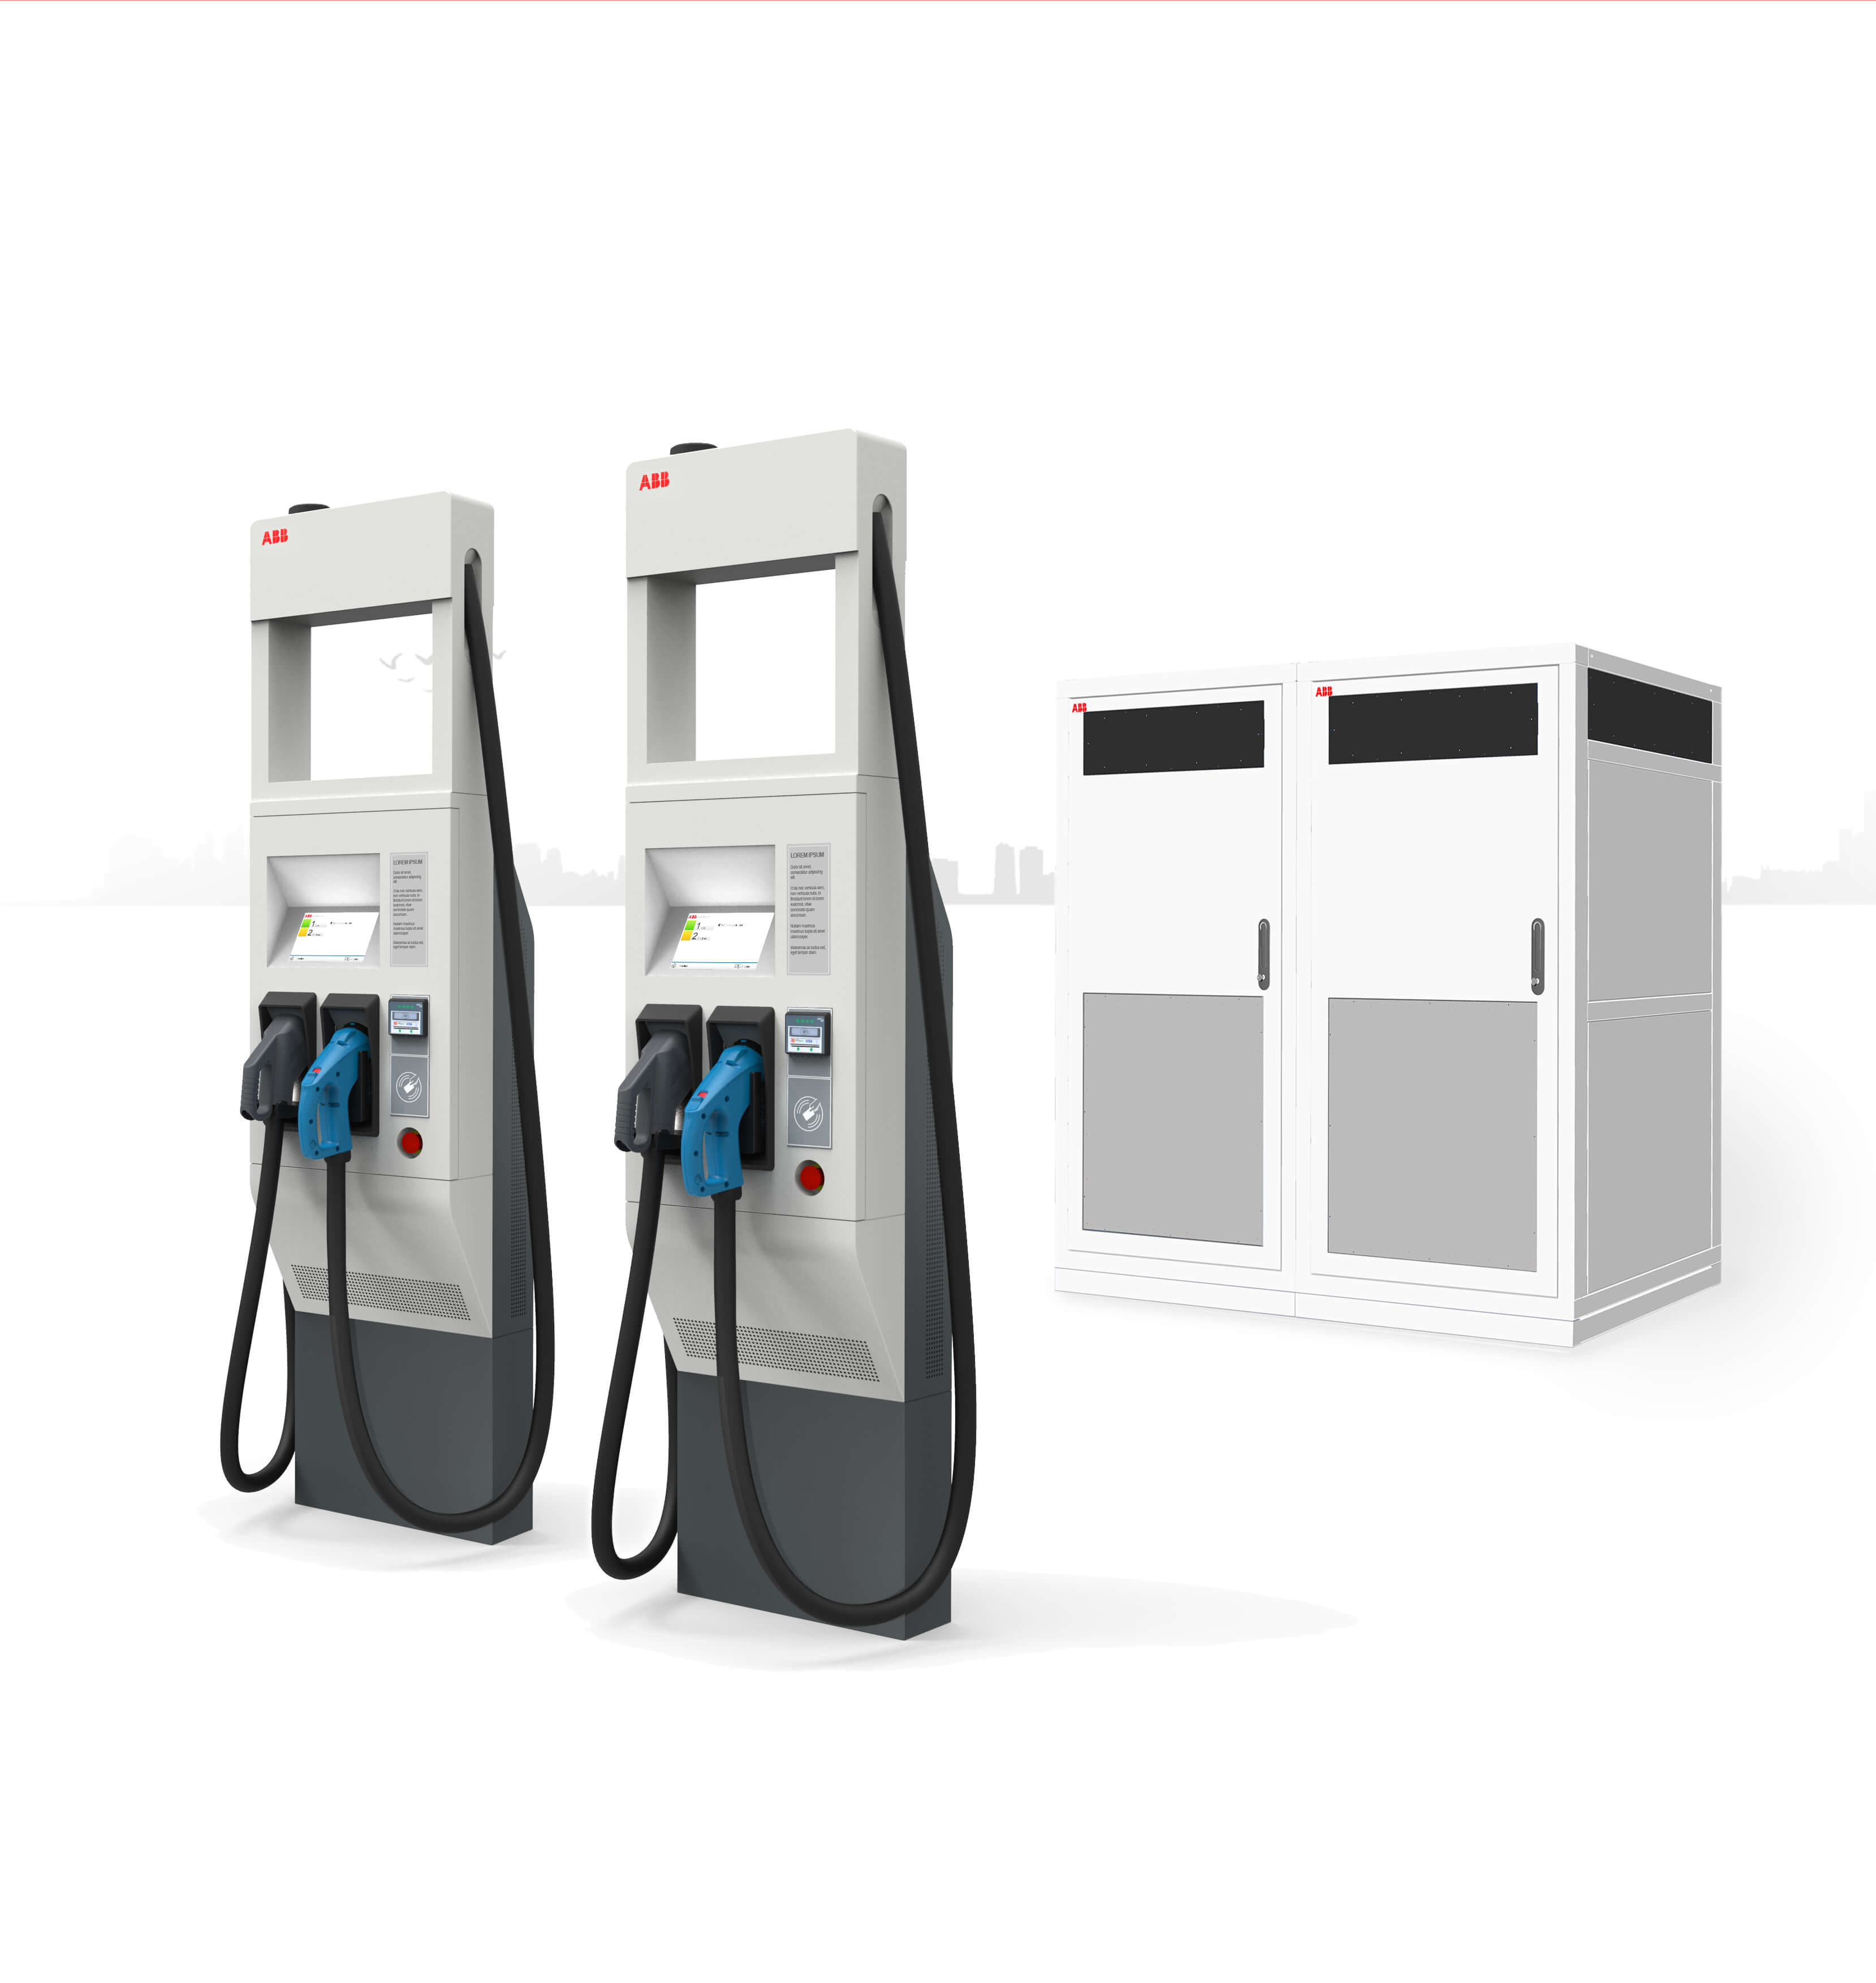 Abb Electric Car Charger